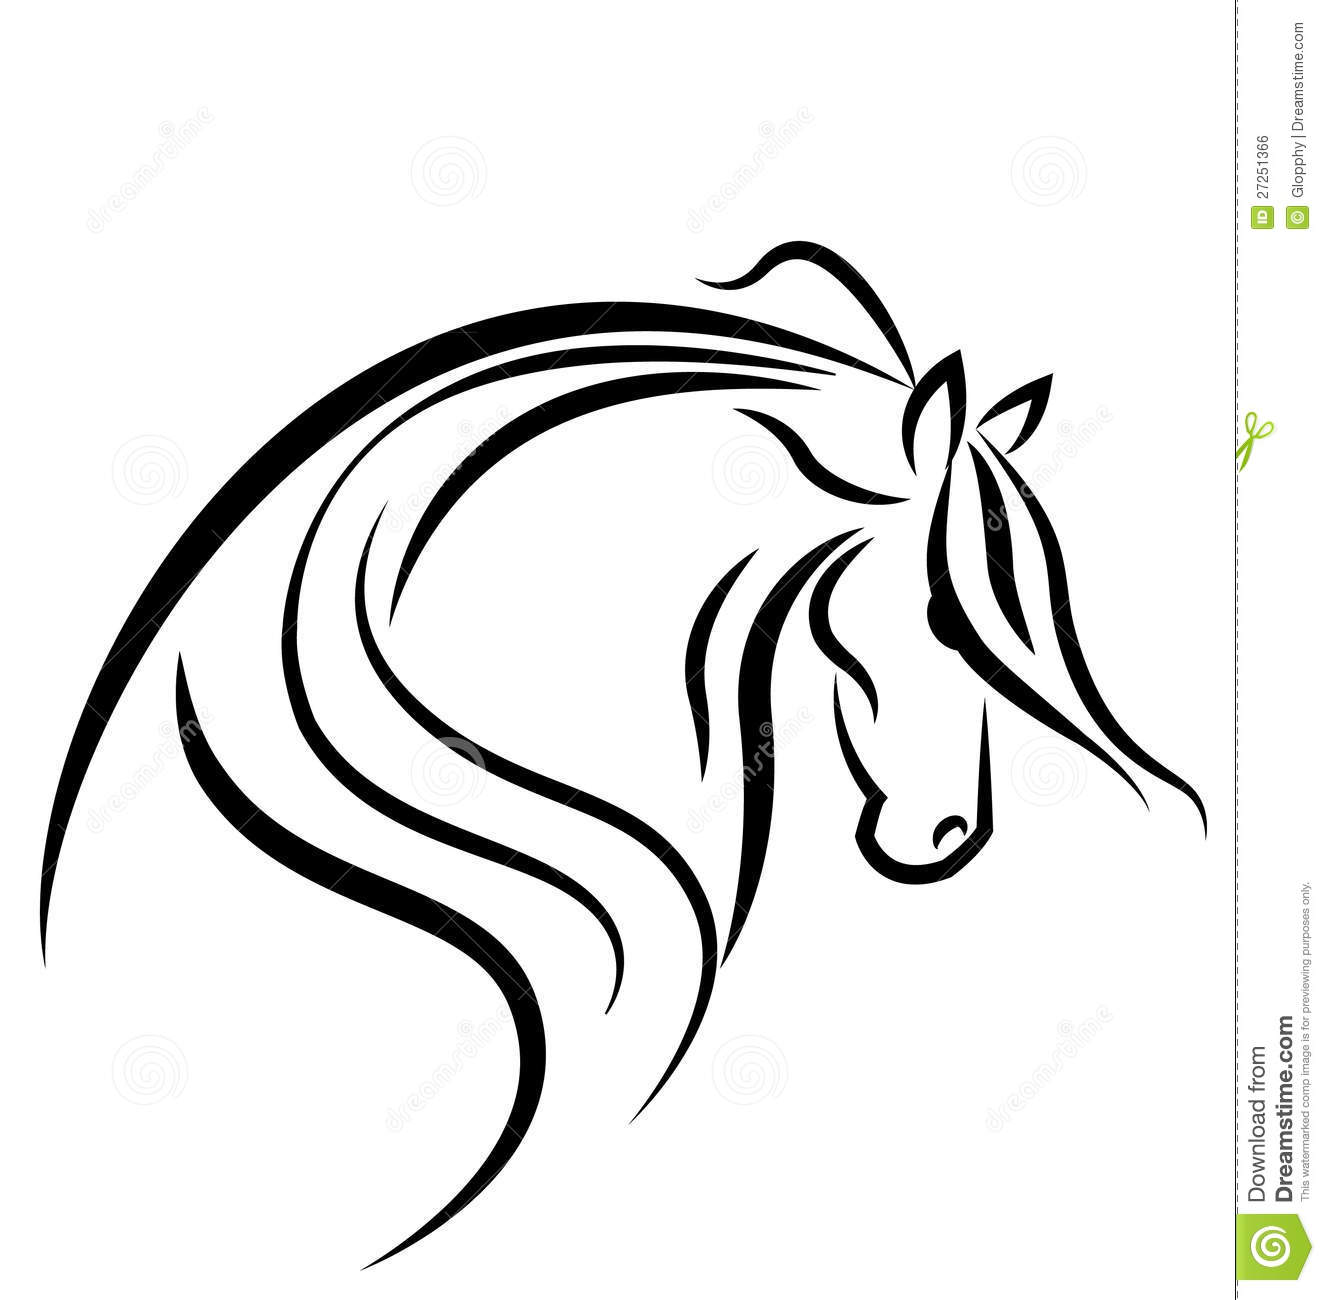 Horse Silhouette Logo Royalty Free Stock Image